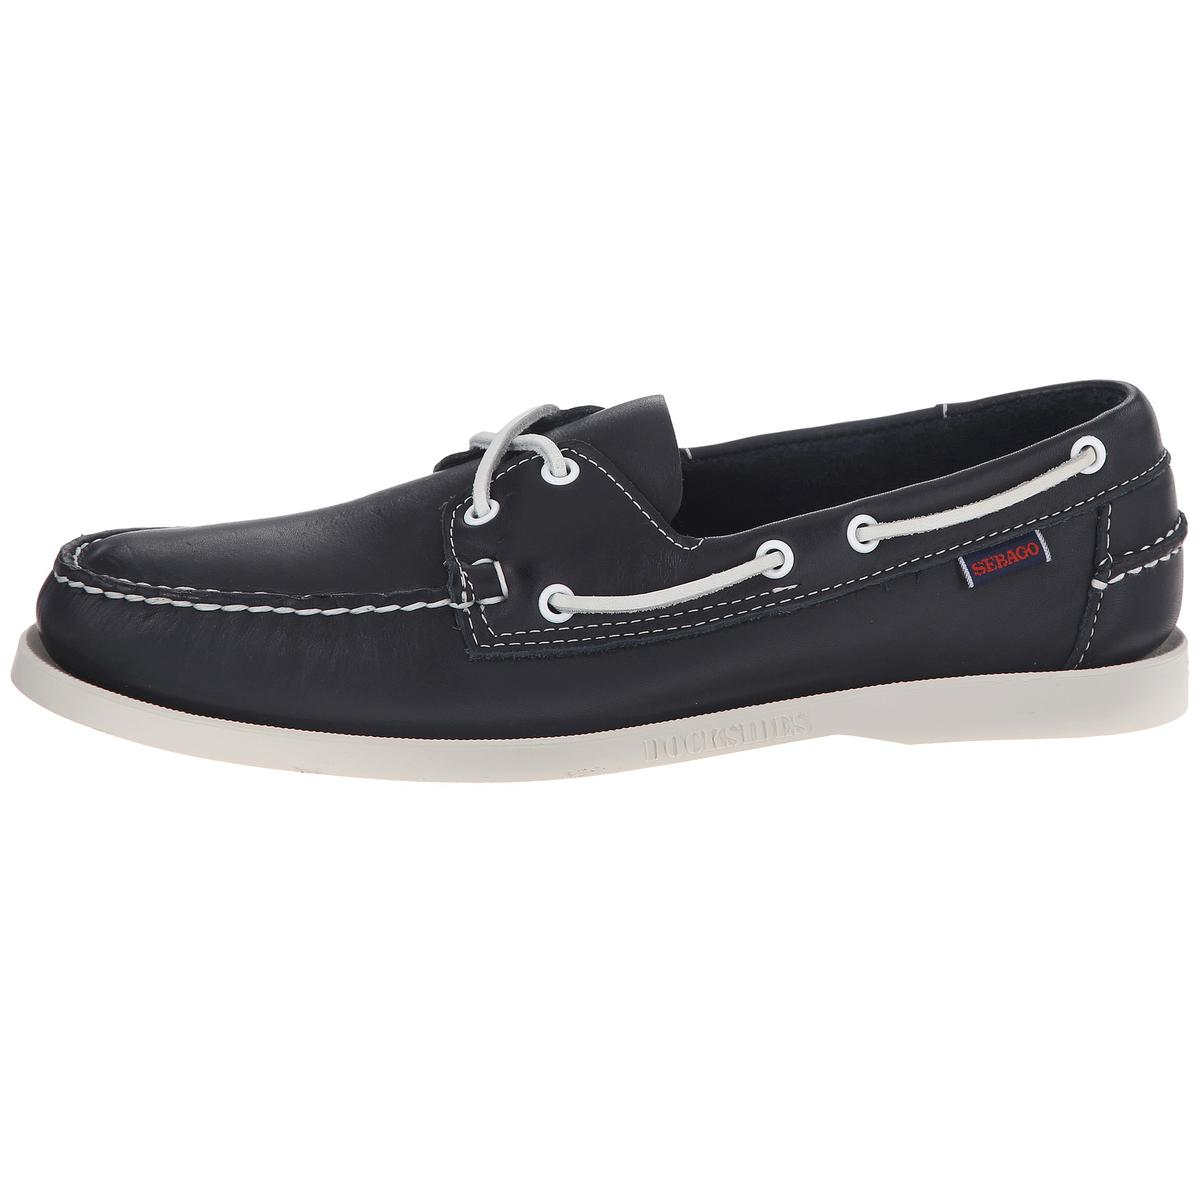 Sebago Docksides Womens Navy Boat Shoes by Sebago